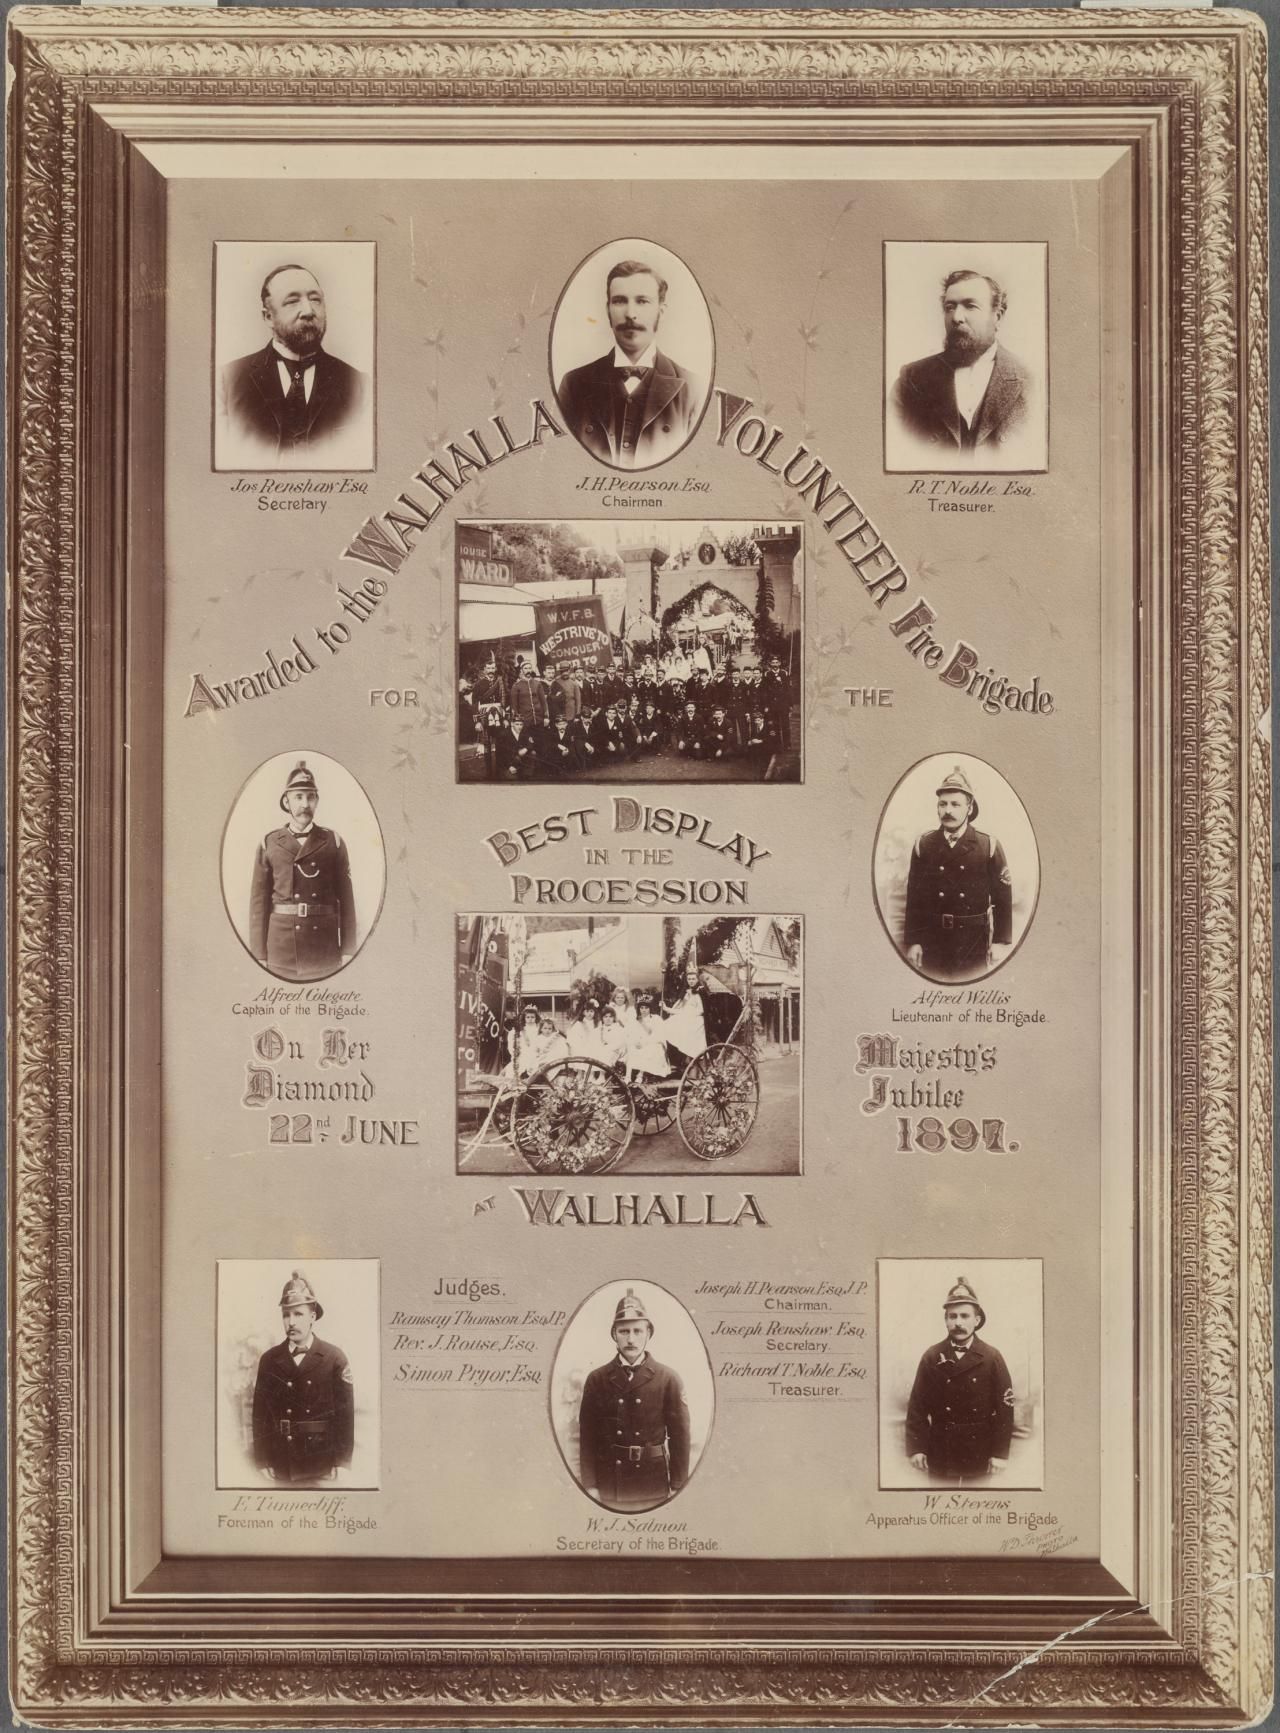 No title (Photographic mosaic of the Walhalla Volunteer Fire Brigade Award, 1897)